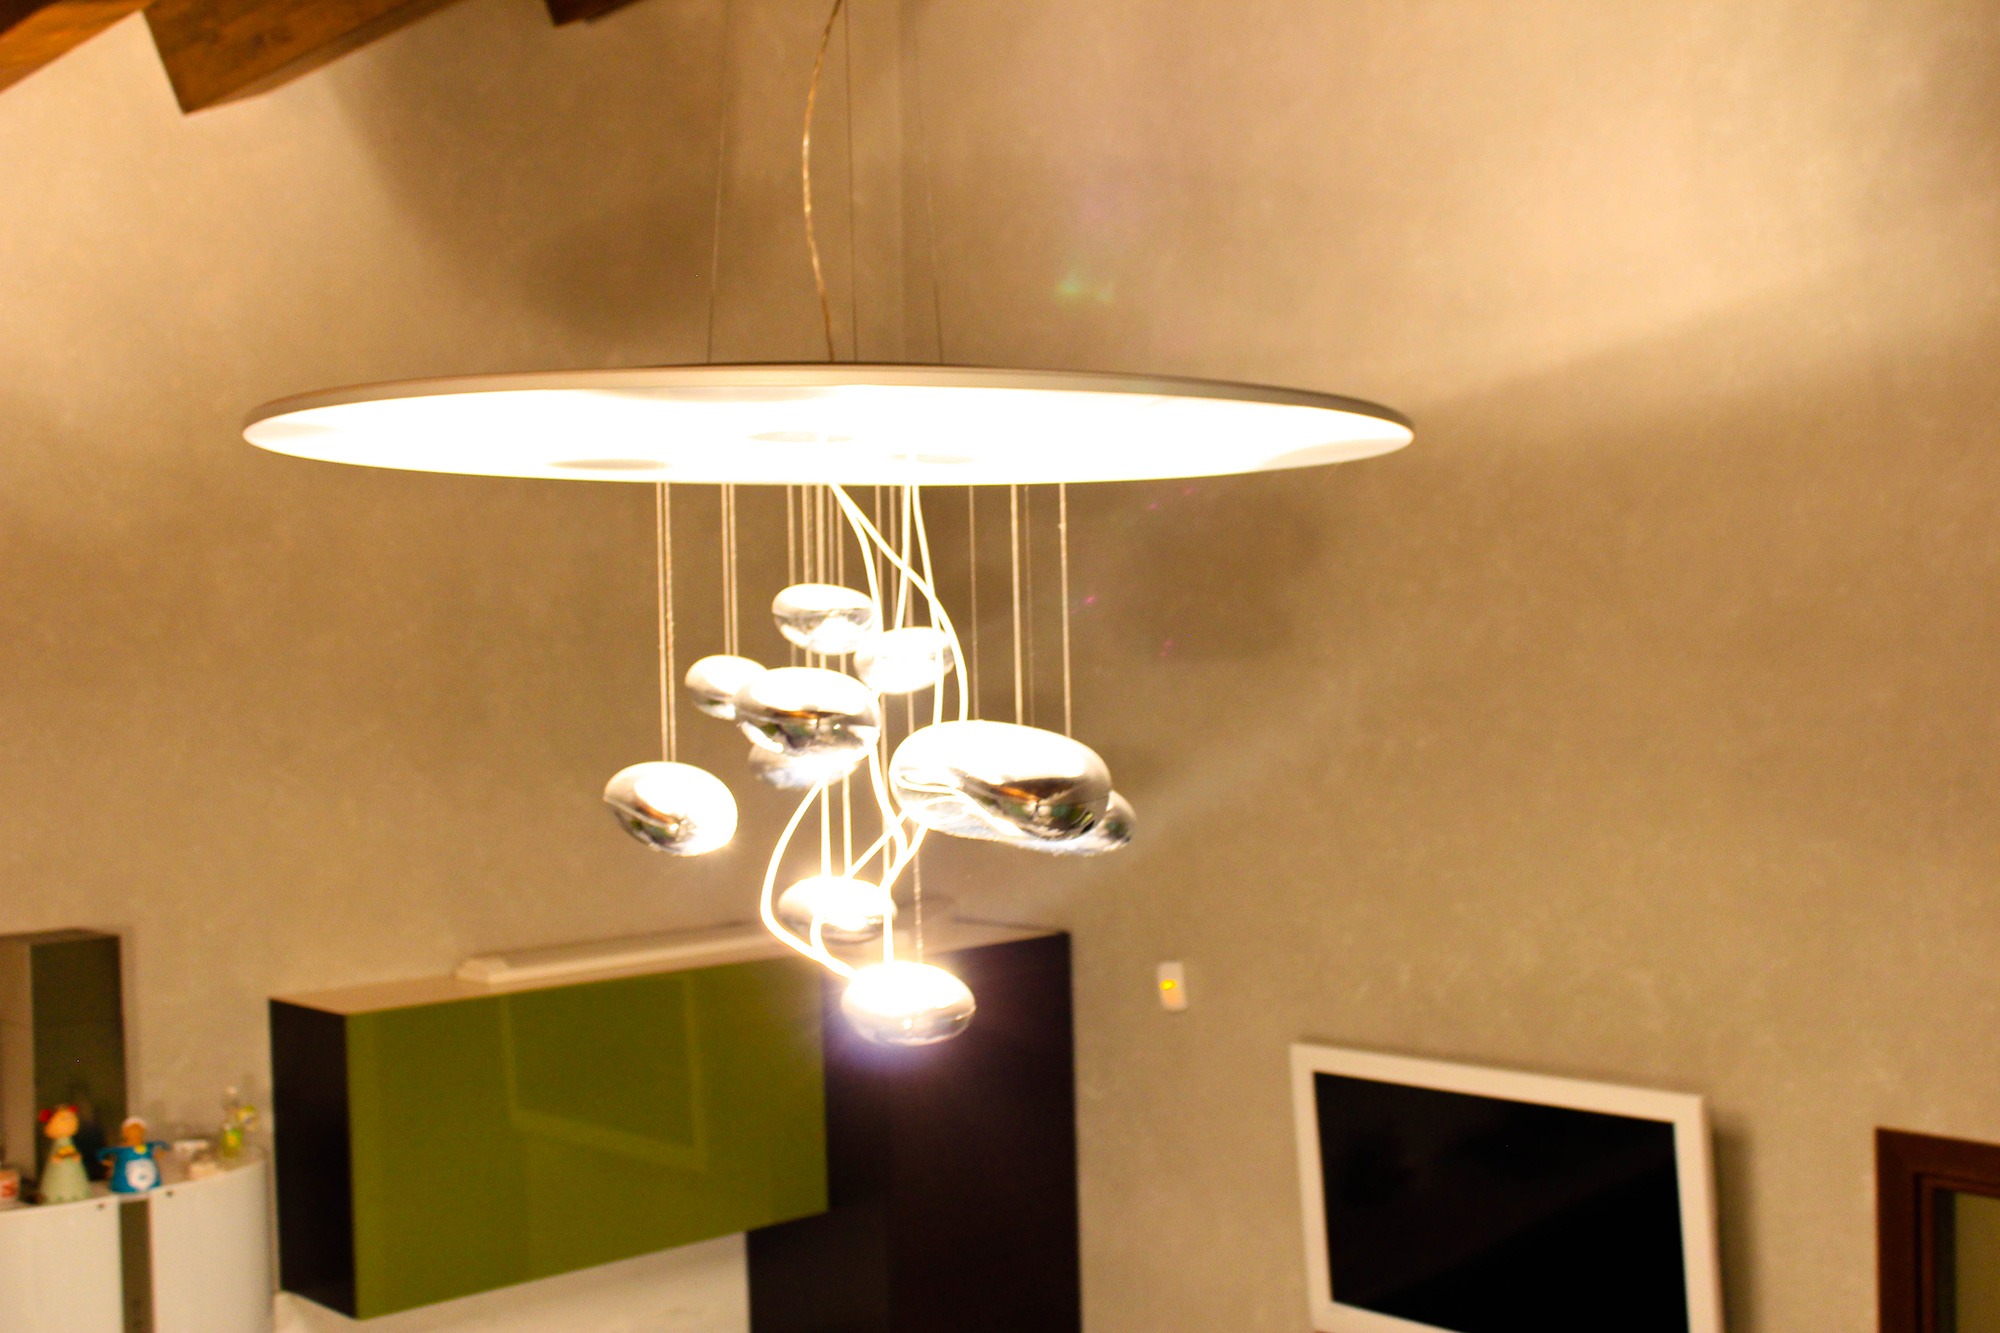 Best lampadari cucina artemide photos home interior for Lampadari design cucina